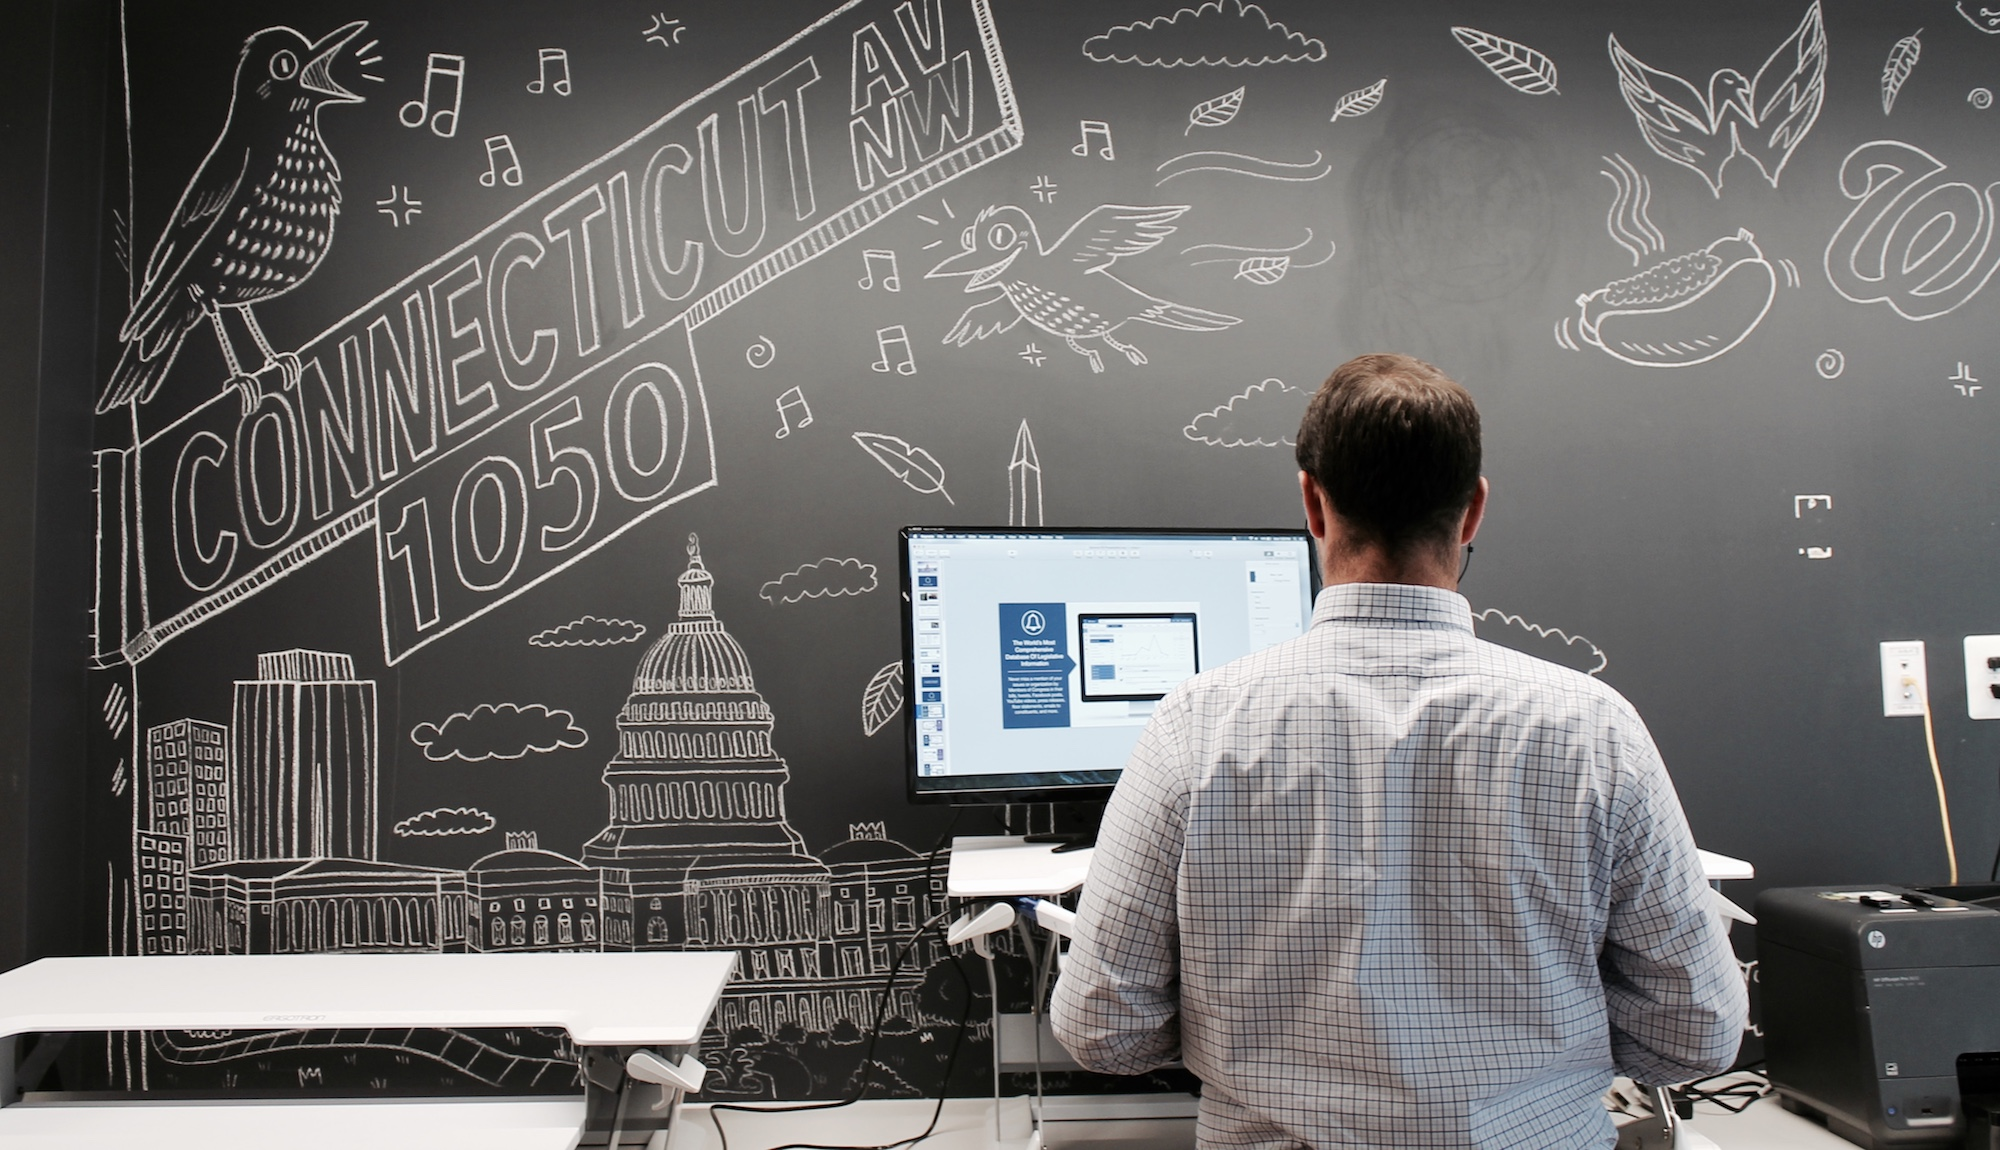 A Quorum employee using a standing desk in front of a chalk-art decorated wall.